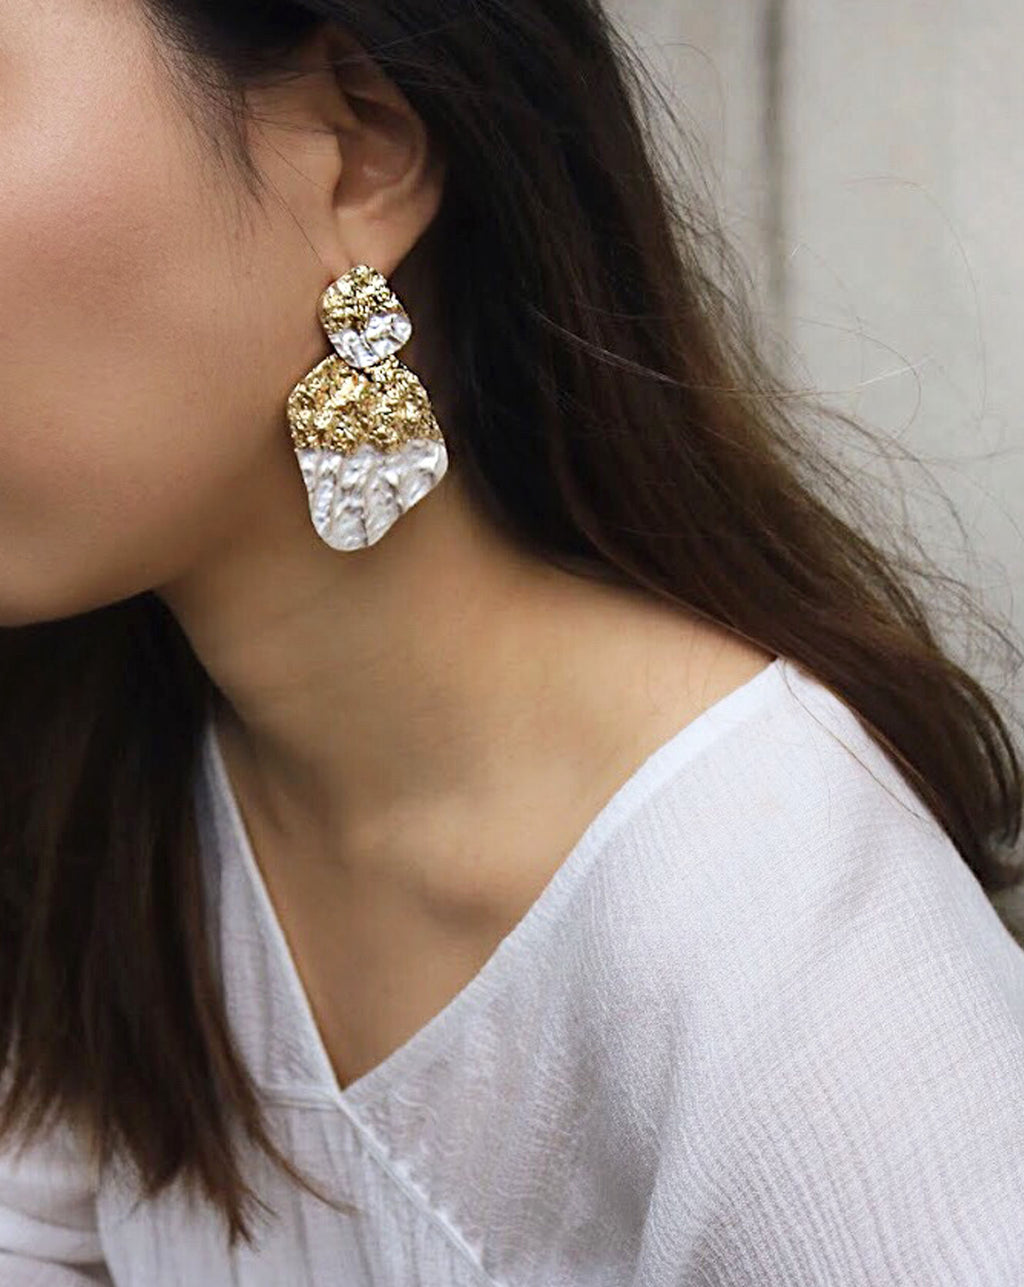 Add a real touch of midas with these textured gold and silver drop earrings - The Hexad